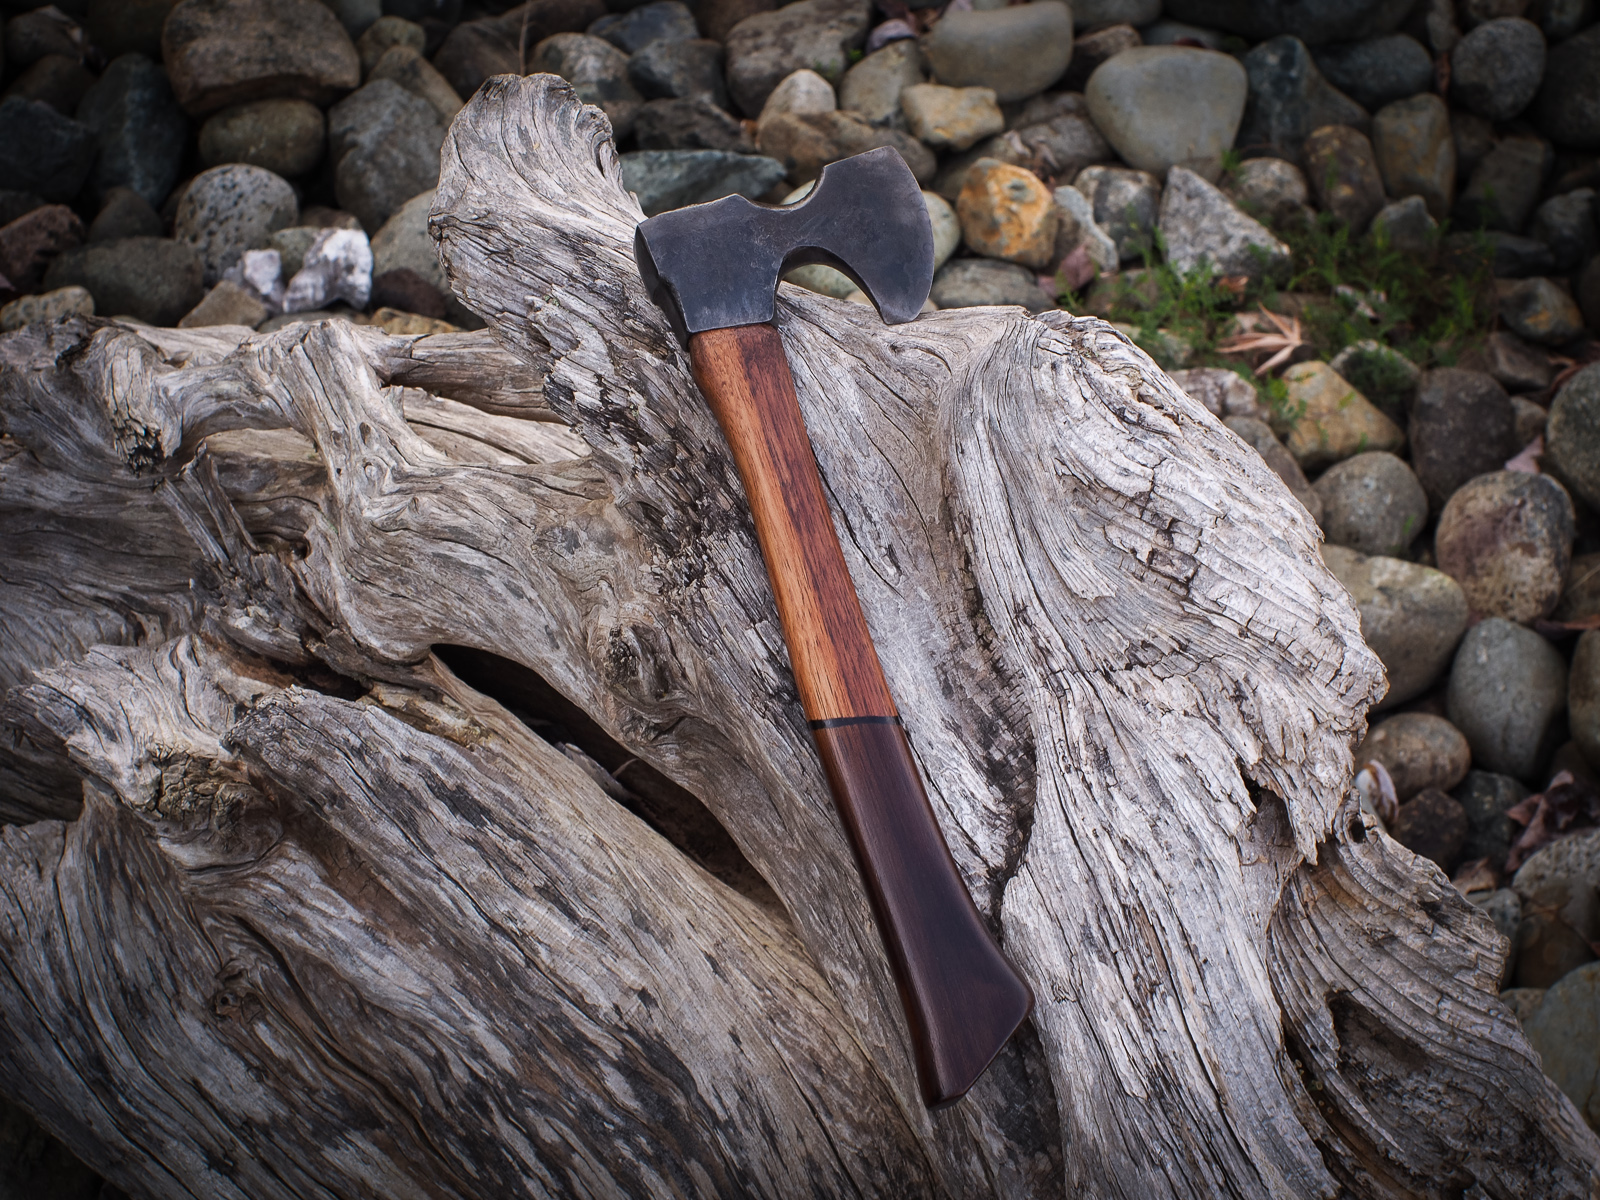 Island Blacksmith: Hand forged reclaimed hiking hatchet made from antique tools